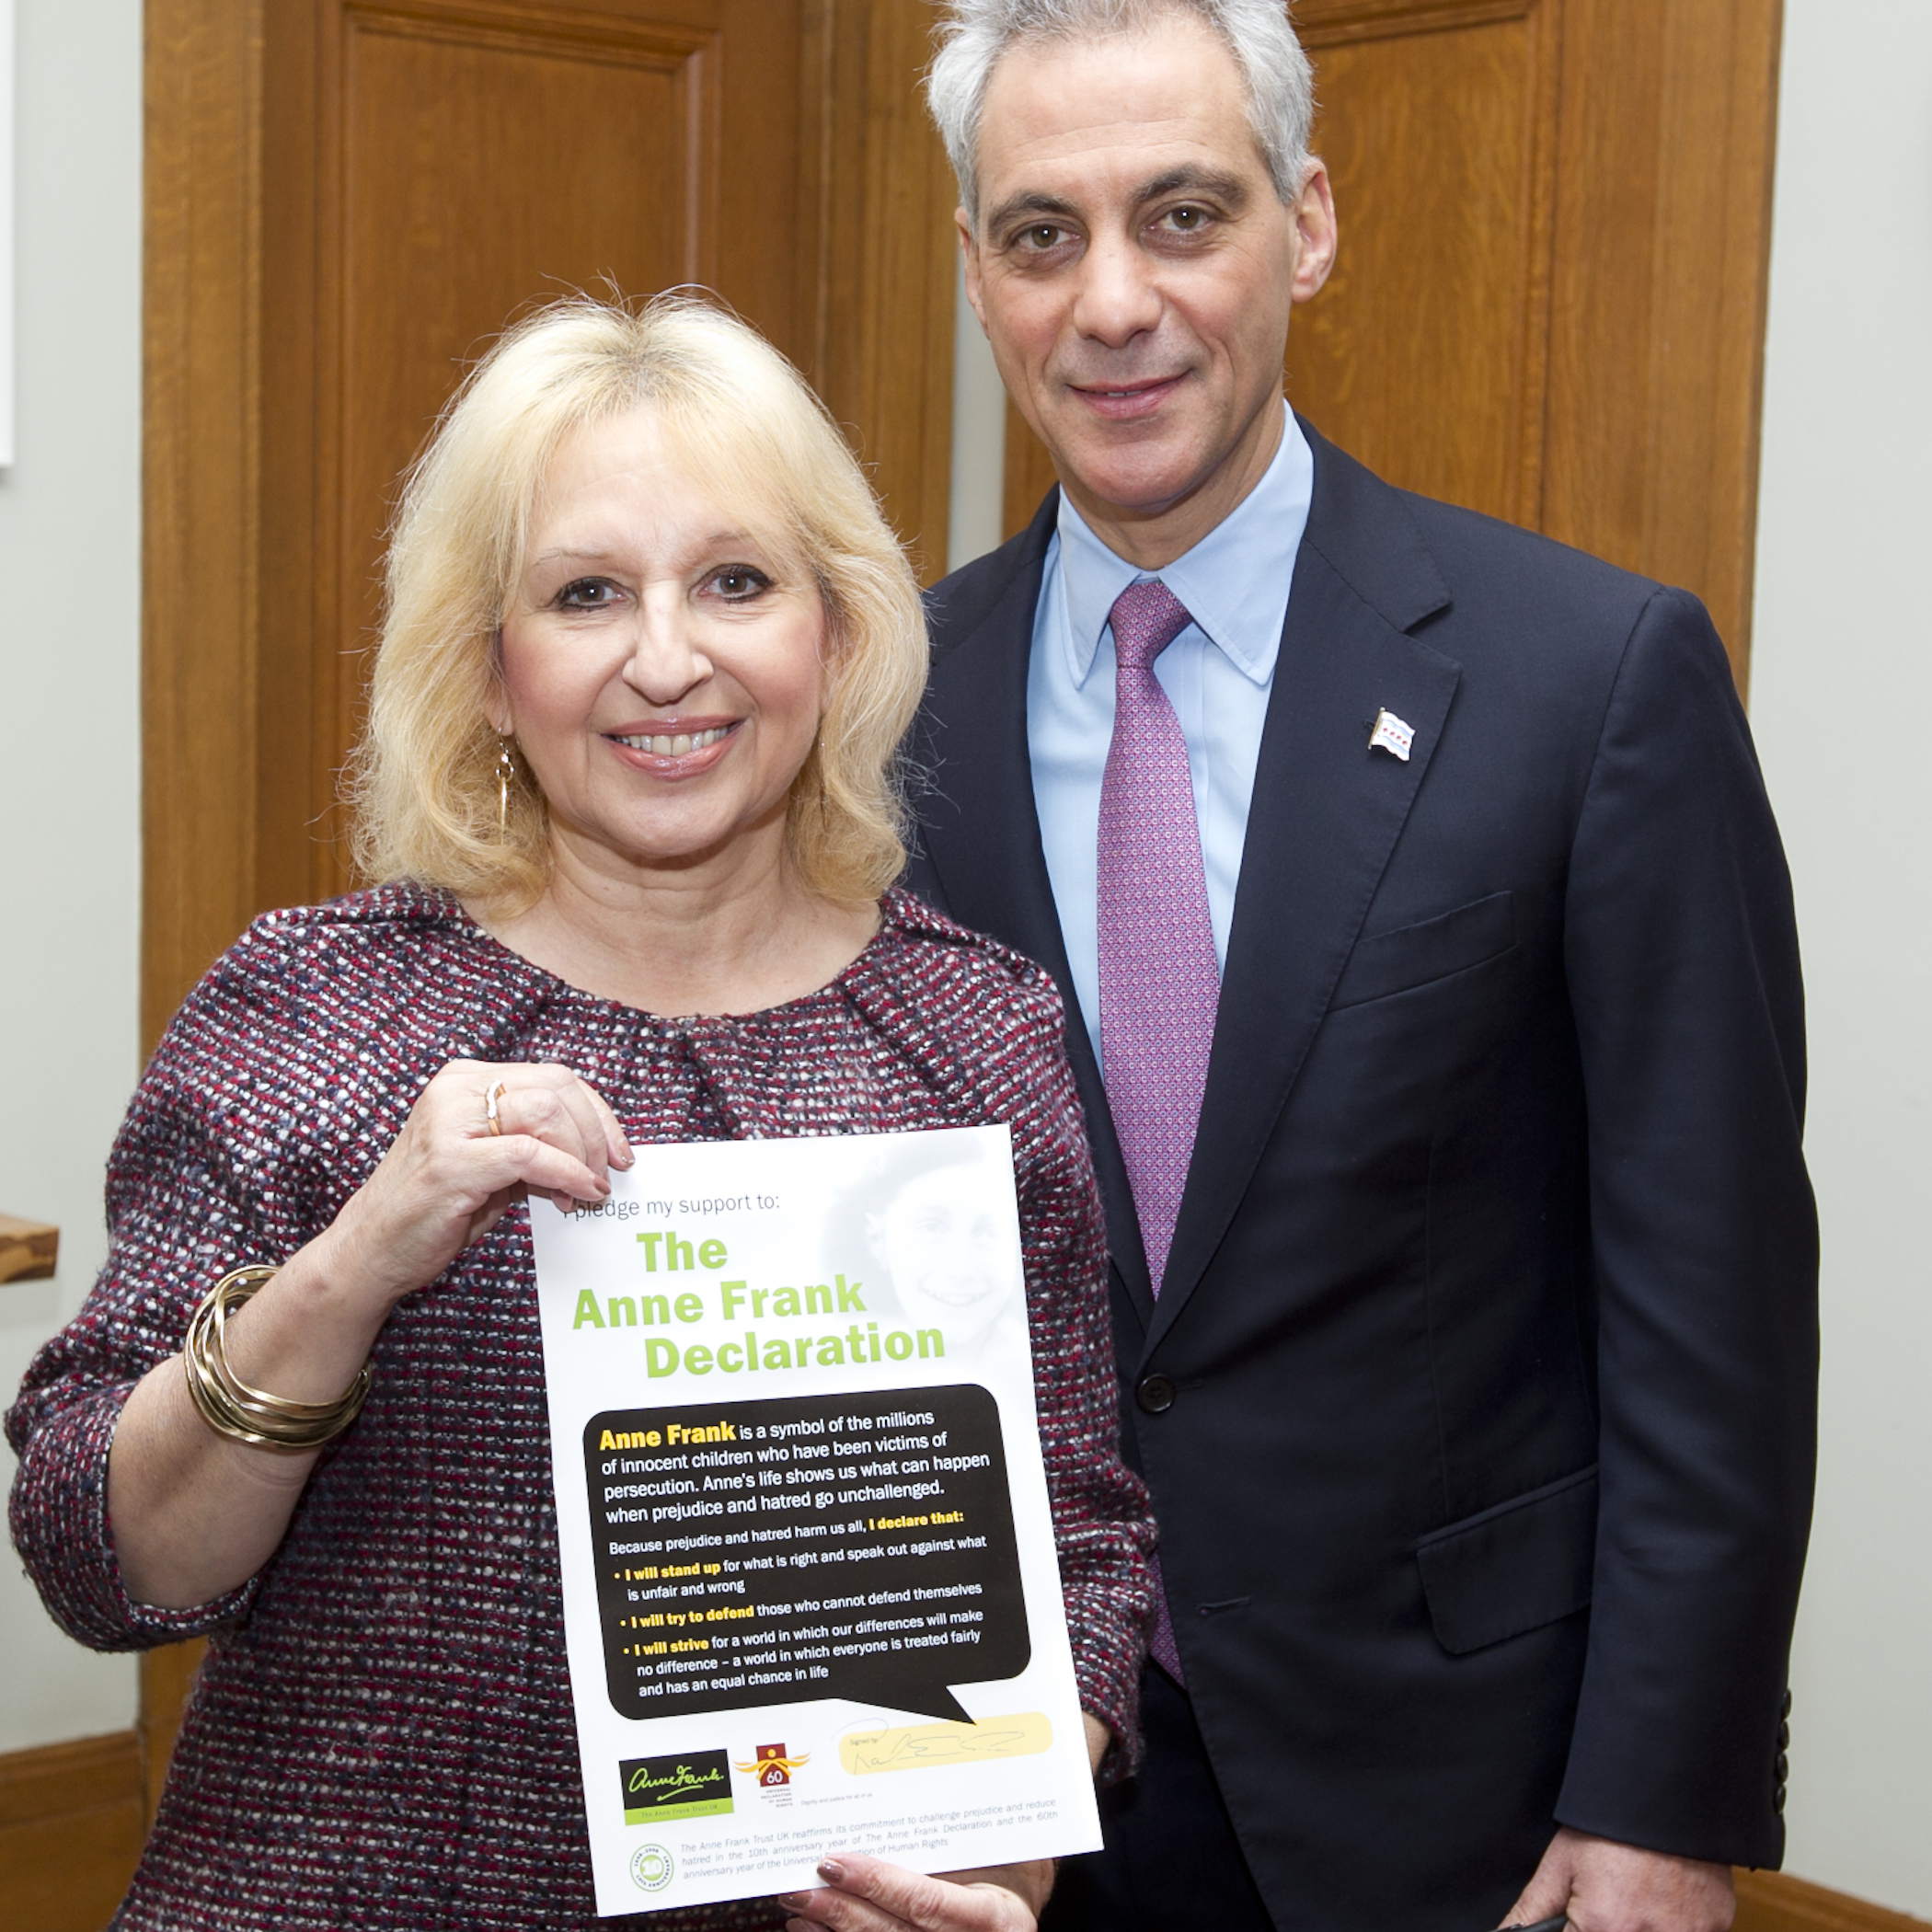 Mayor Emanuel welcomes Gillian Walnes MBE to Chicago, signing the Anne Frank Declaration to fight prejudice and hatred.